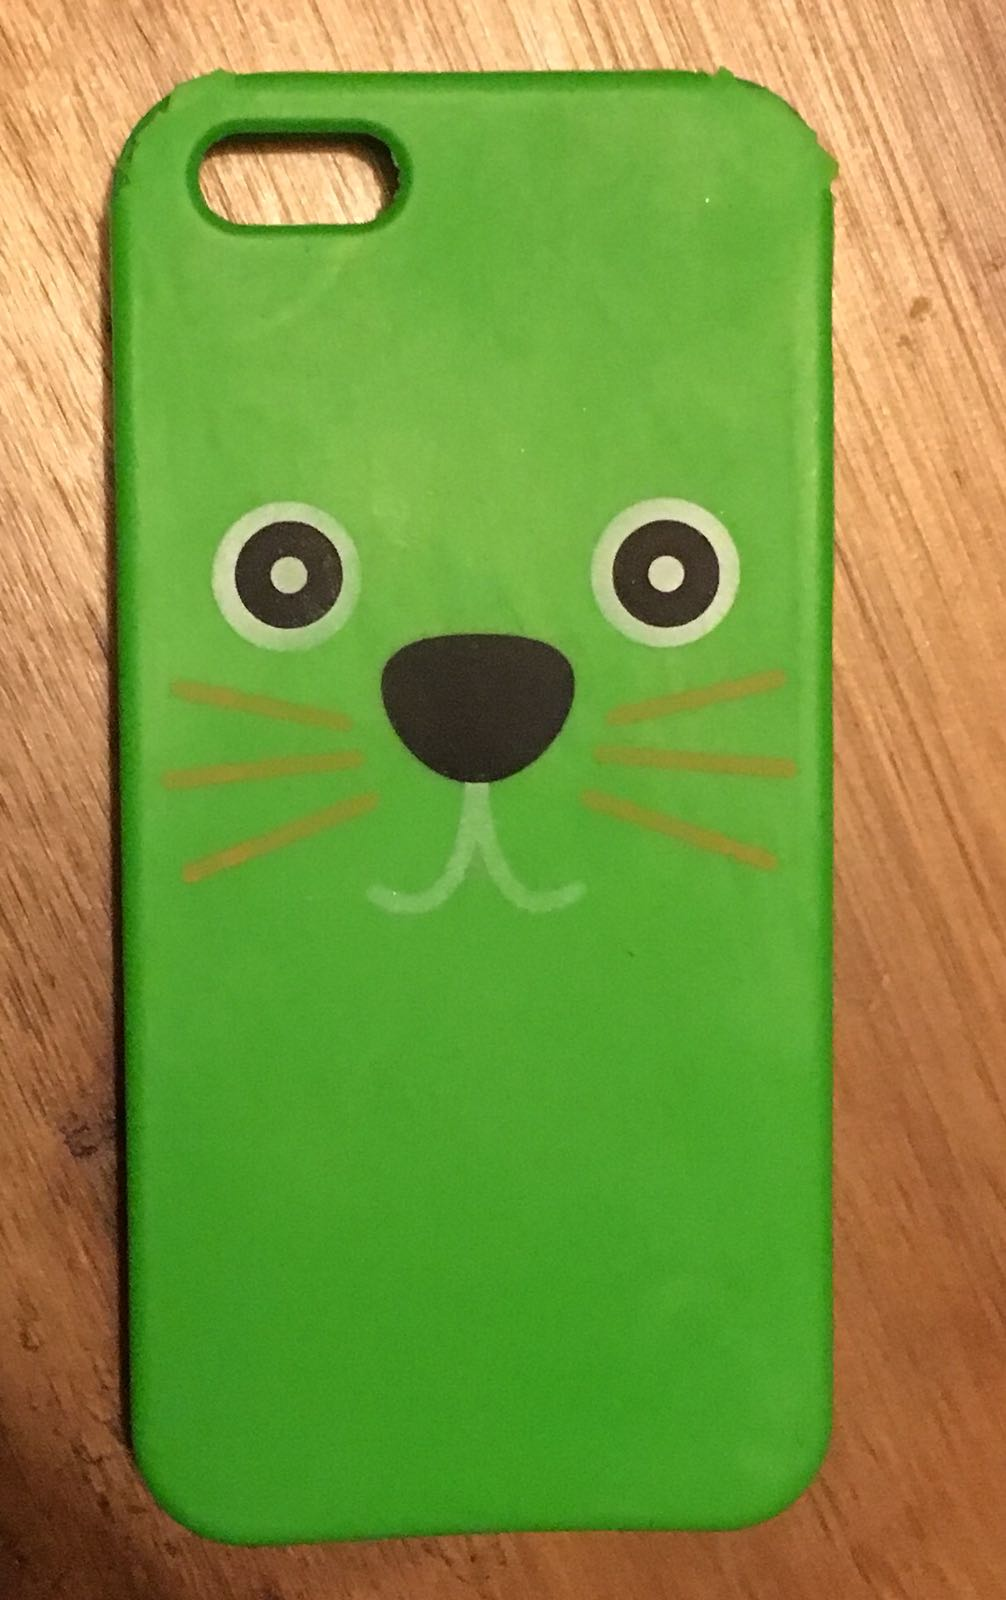 Green iPhone Thing